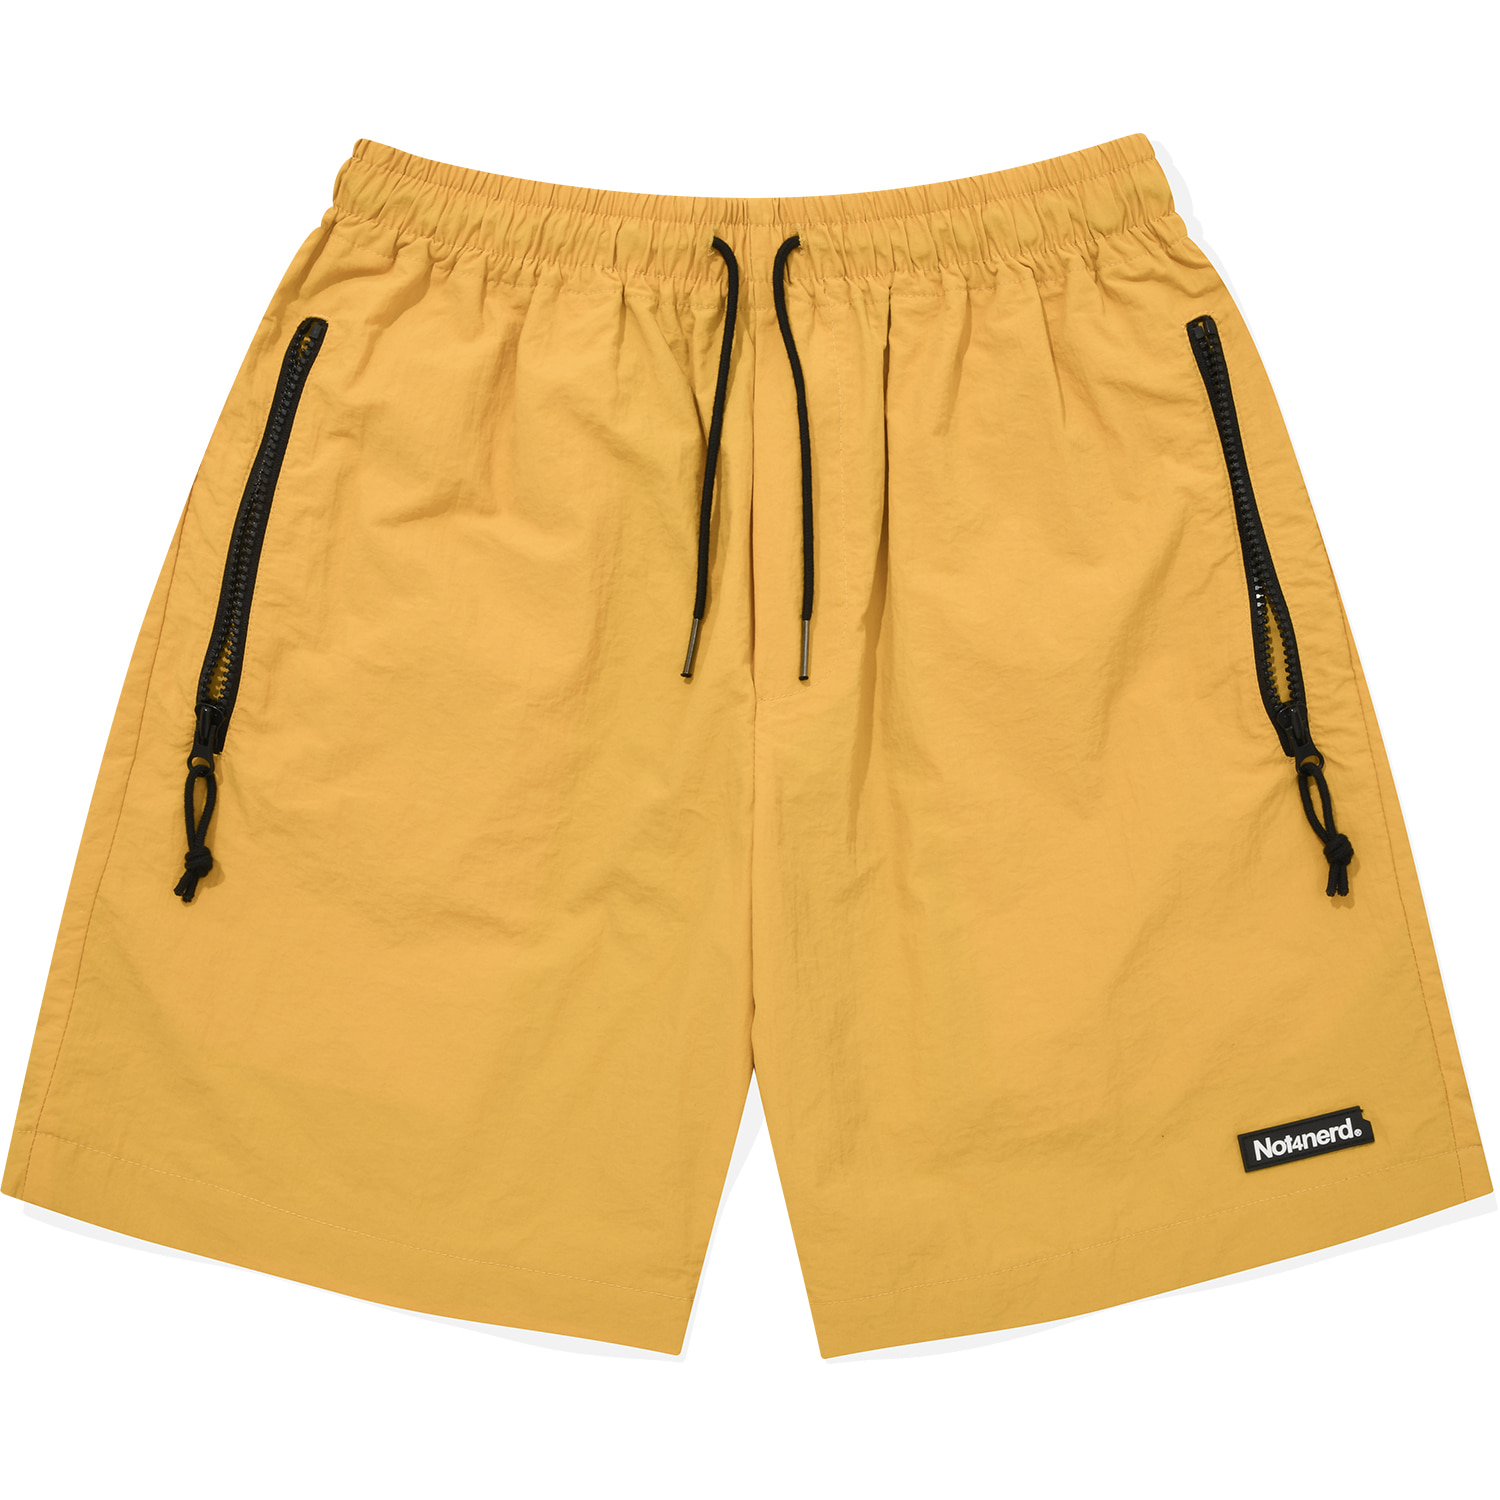 Nylon Zipper Short Yellow,NOT4NERD